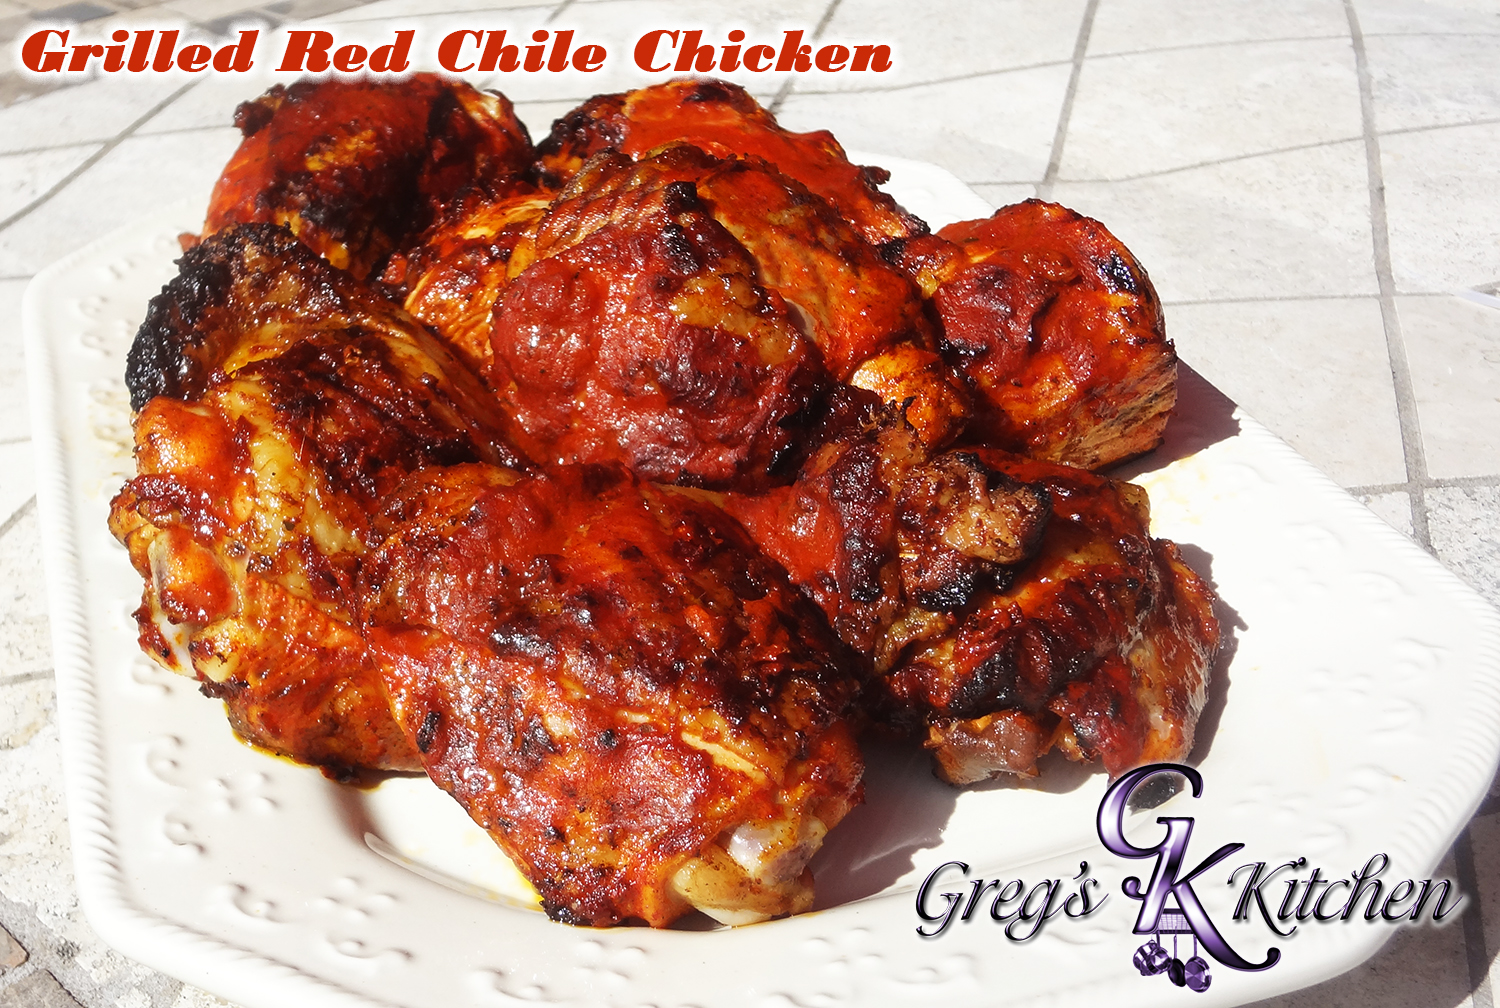 Grilled Red Chile Chicken